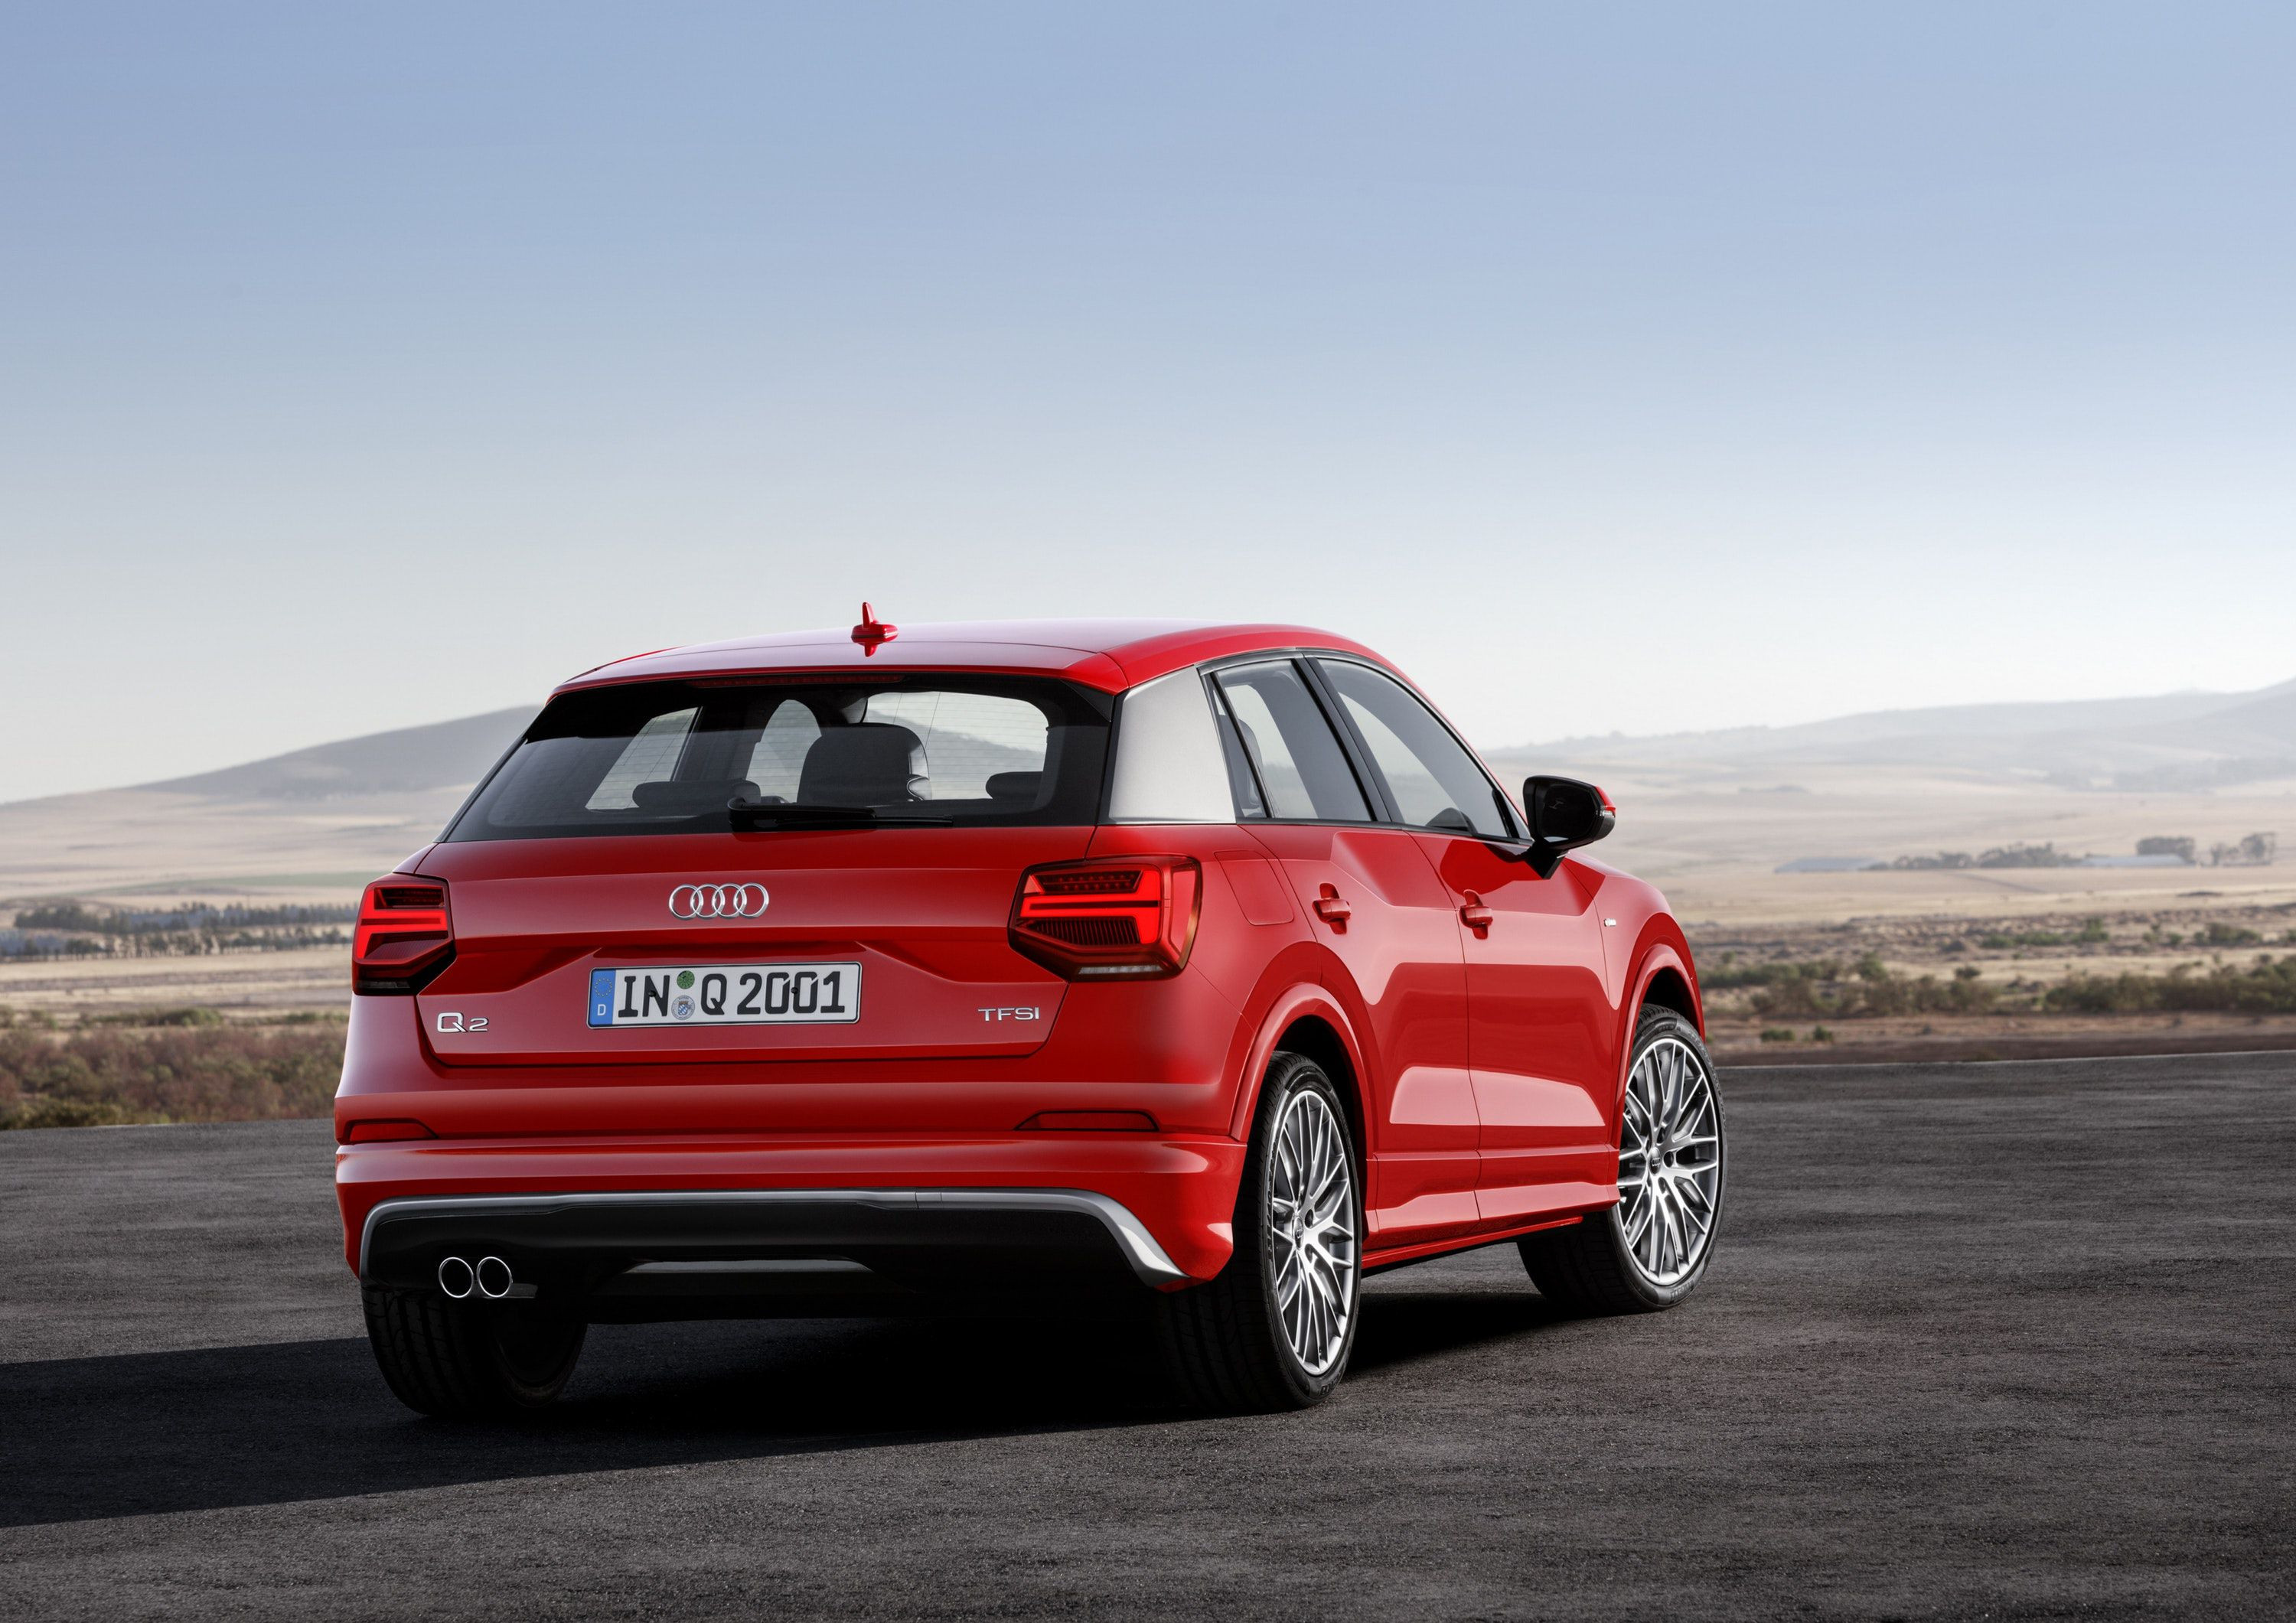 Rear of red Audi Q2 SUV